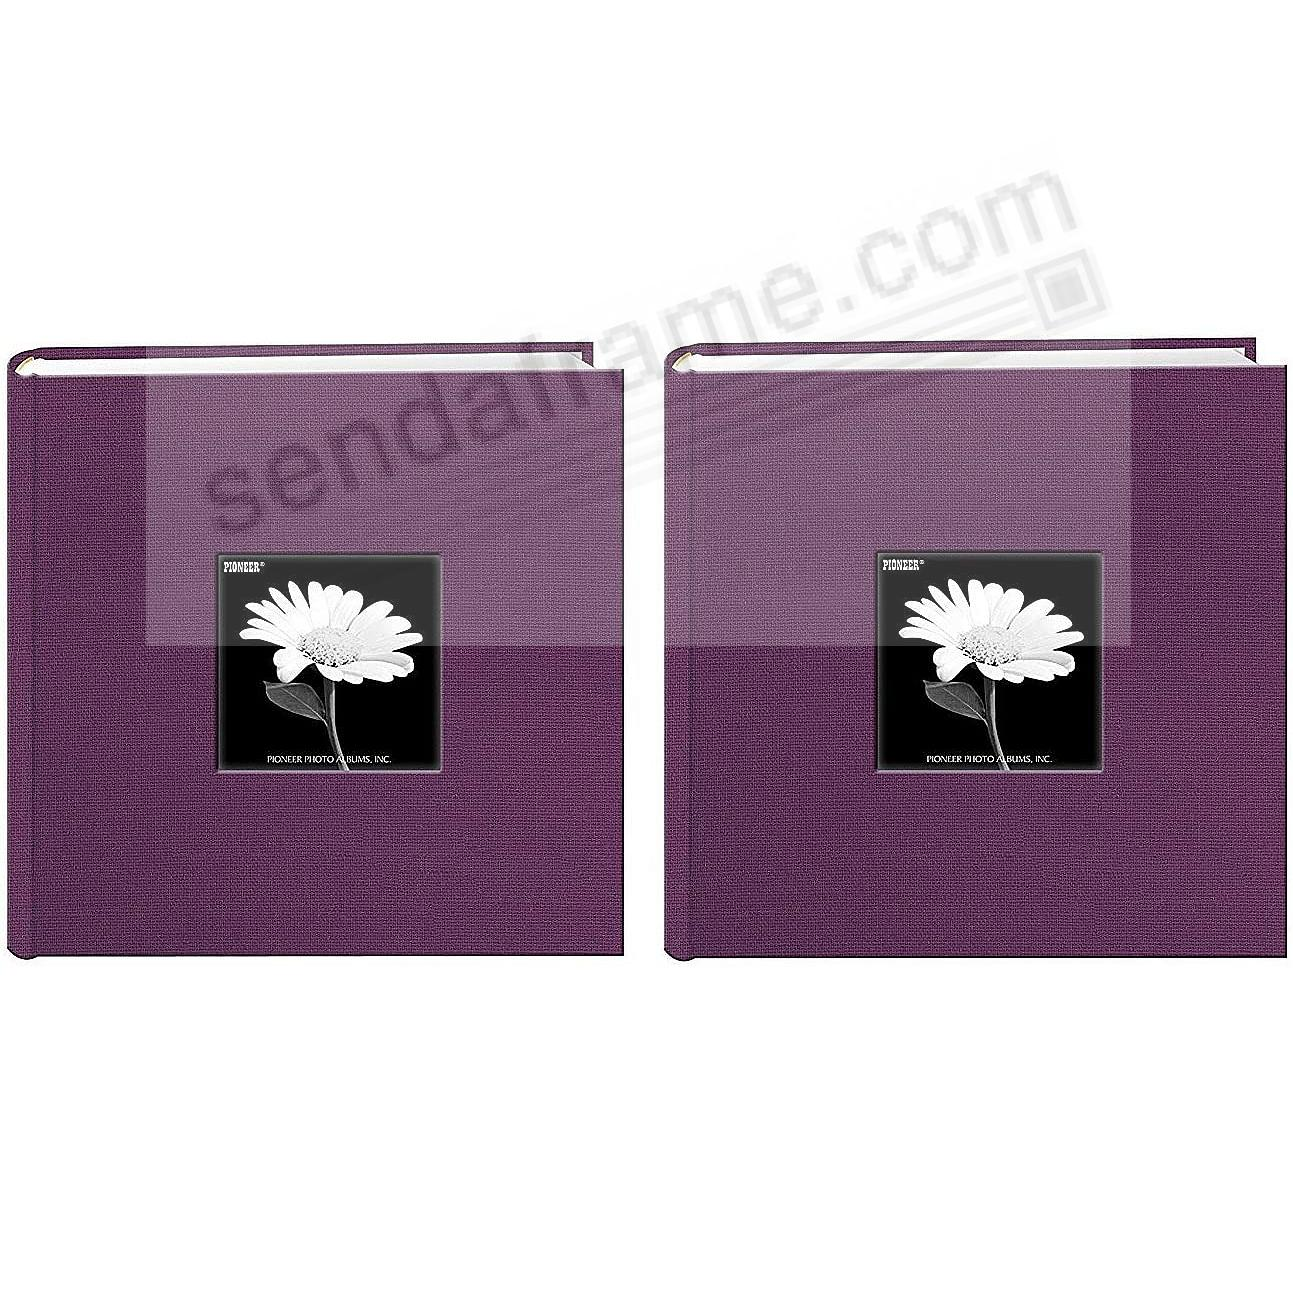 WILDBERRY PURPLE cloth 2-up frame photo album by Pioneer® (2-pack)